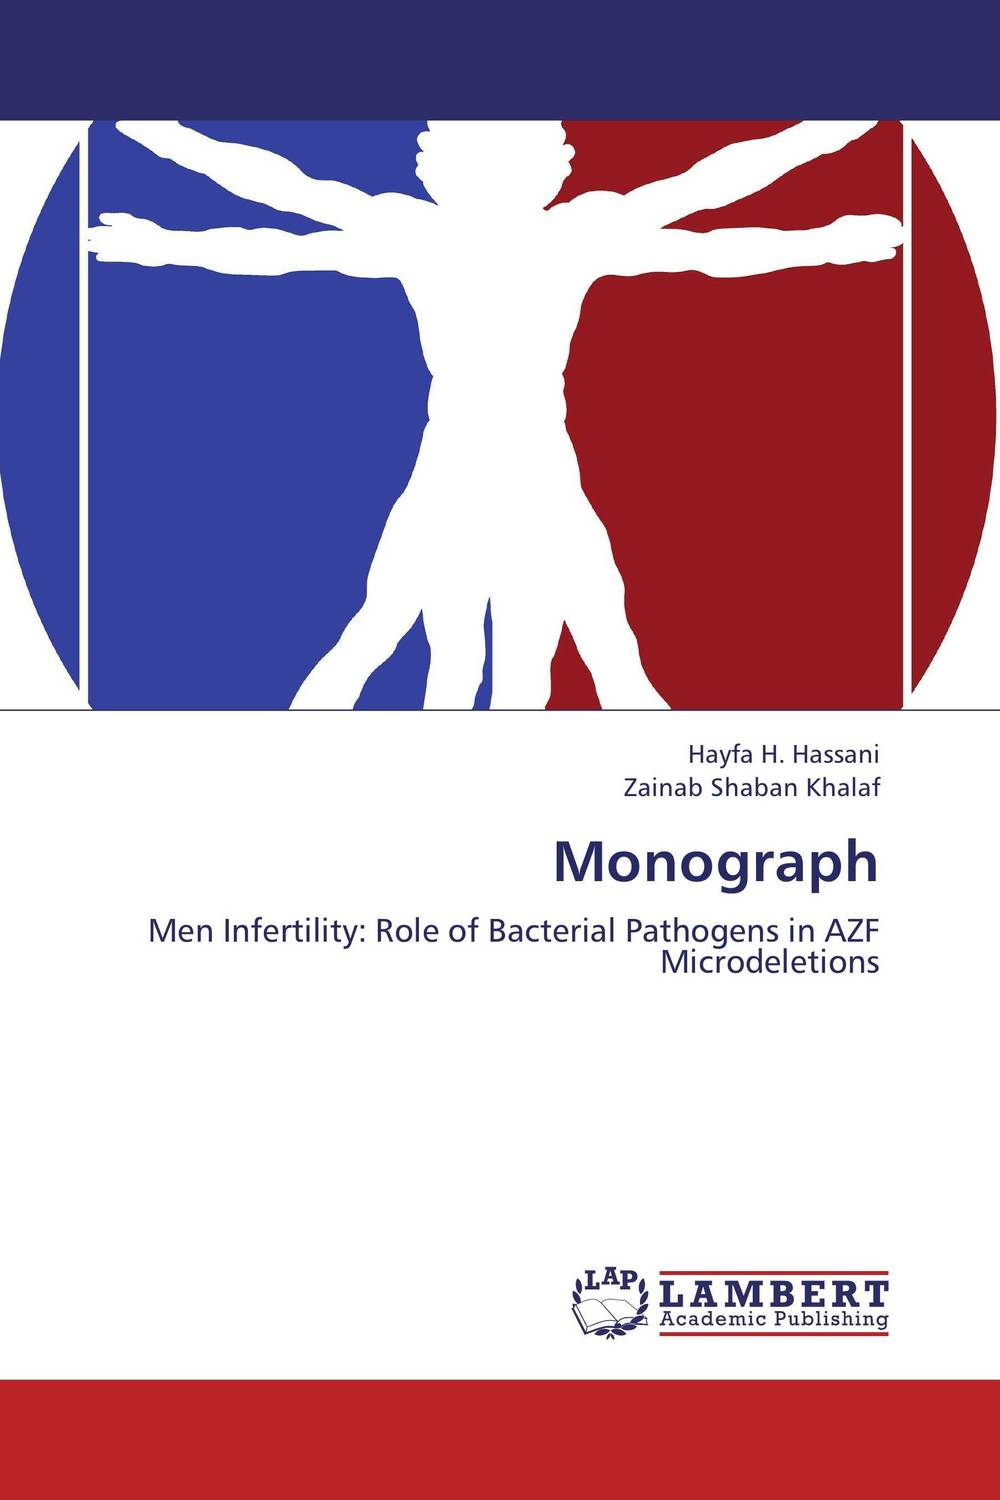 Monograph therapeutic management of infertility in cattle